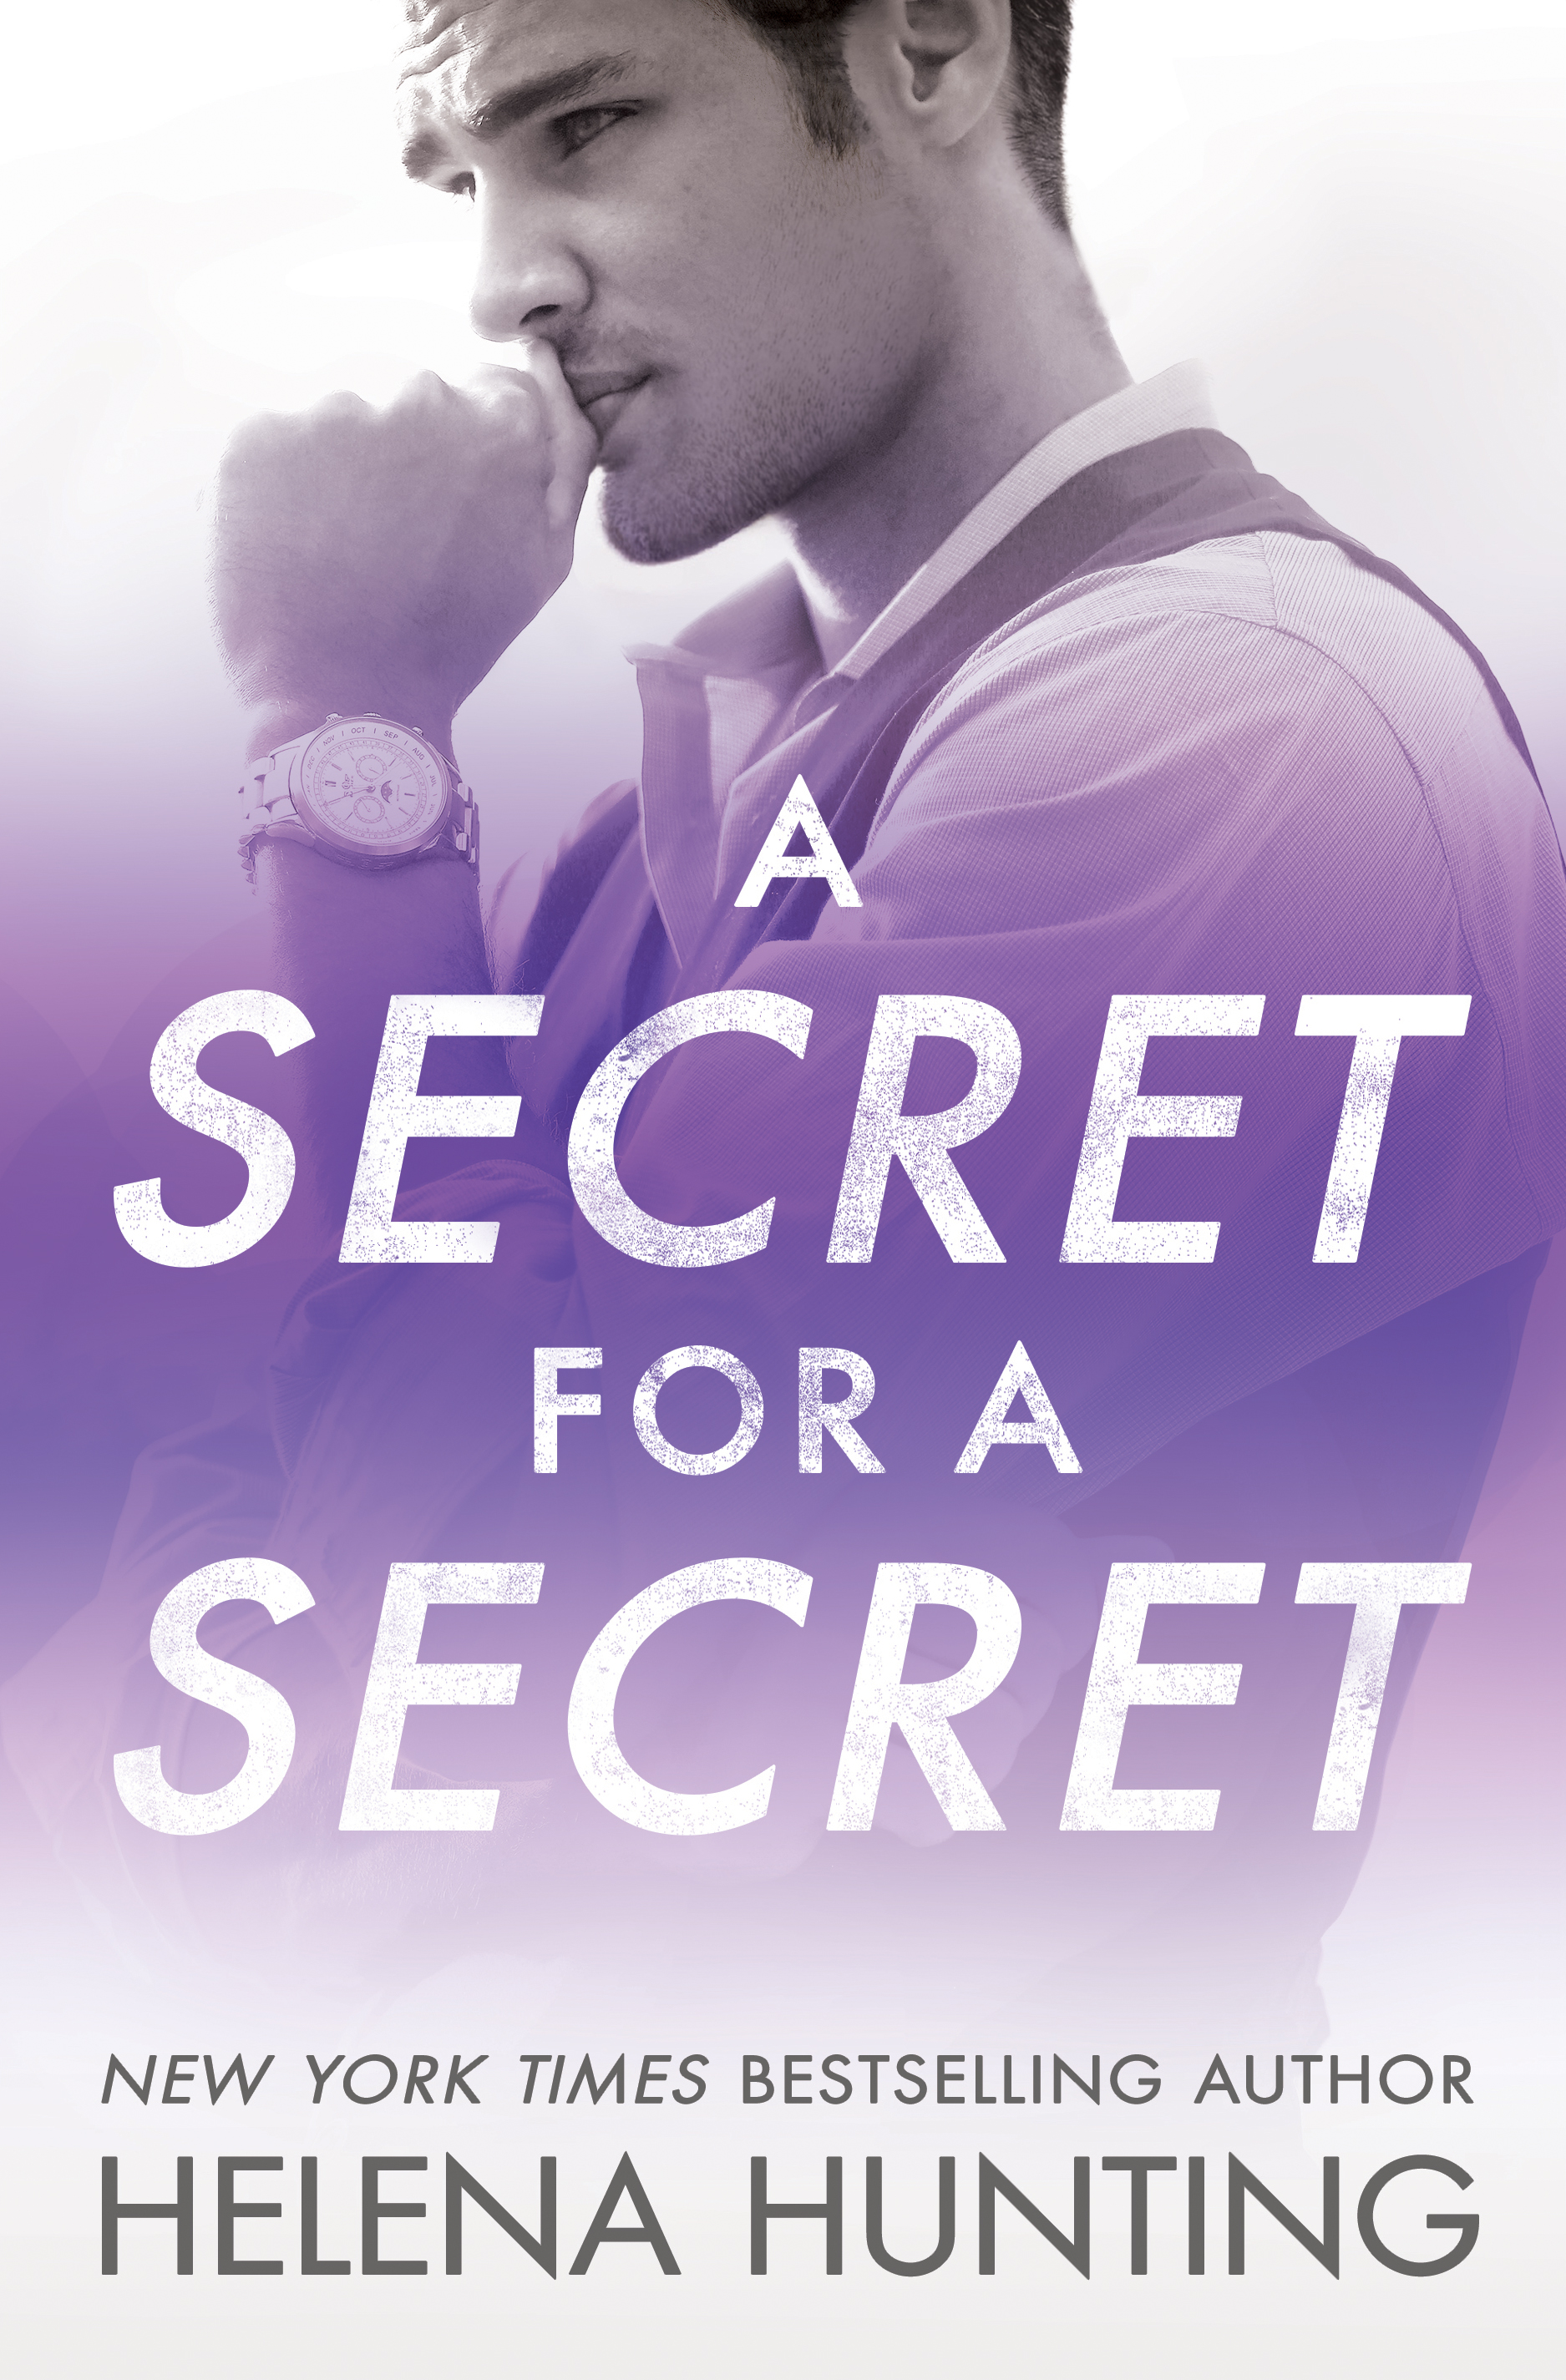 A Secret for a Secret (All In) - Helena Hunting